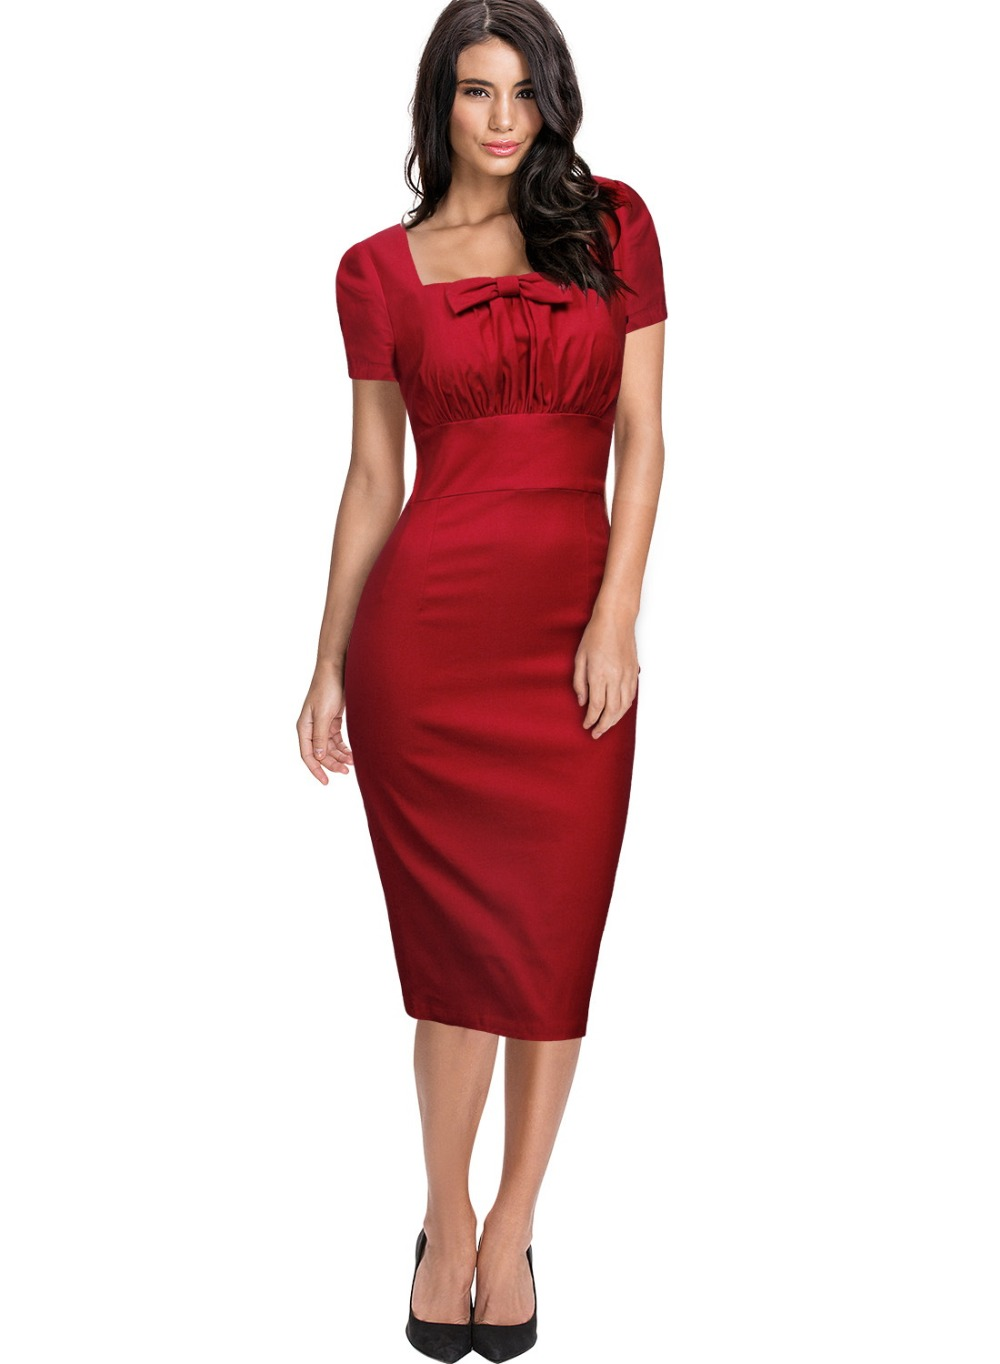 Free shipping Women s Vintage Retro Square Neck 1940 s Fitted Pencil  Bodycon Slim Work Party Dresses Summer club dress 3120-in Dresses from Women s  Clothing ... 2524cc7e227a